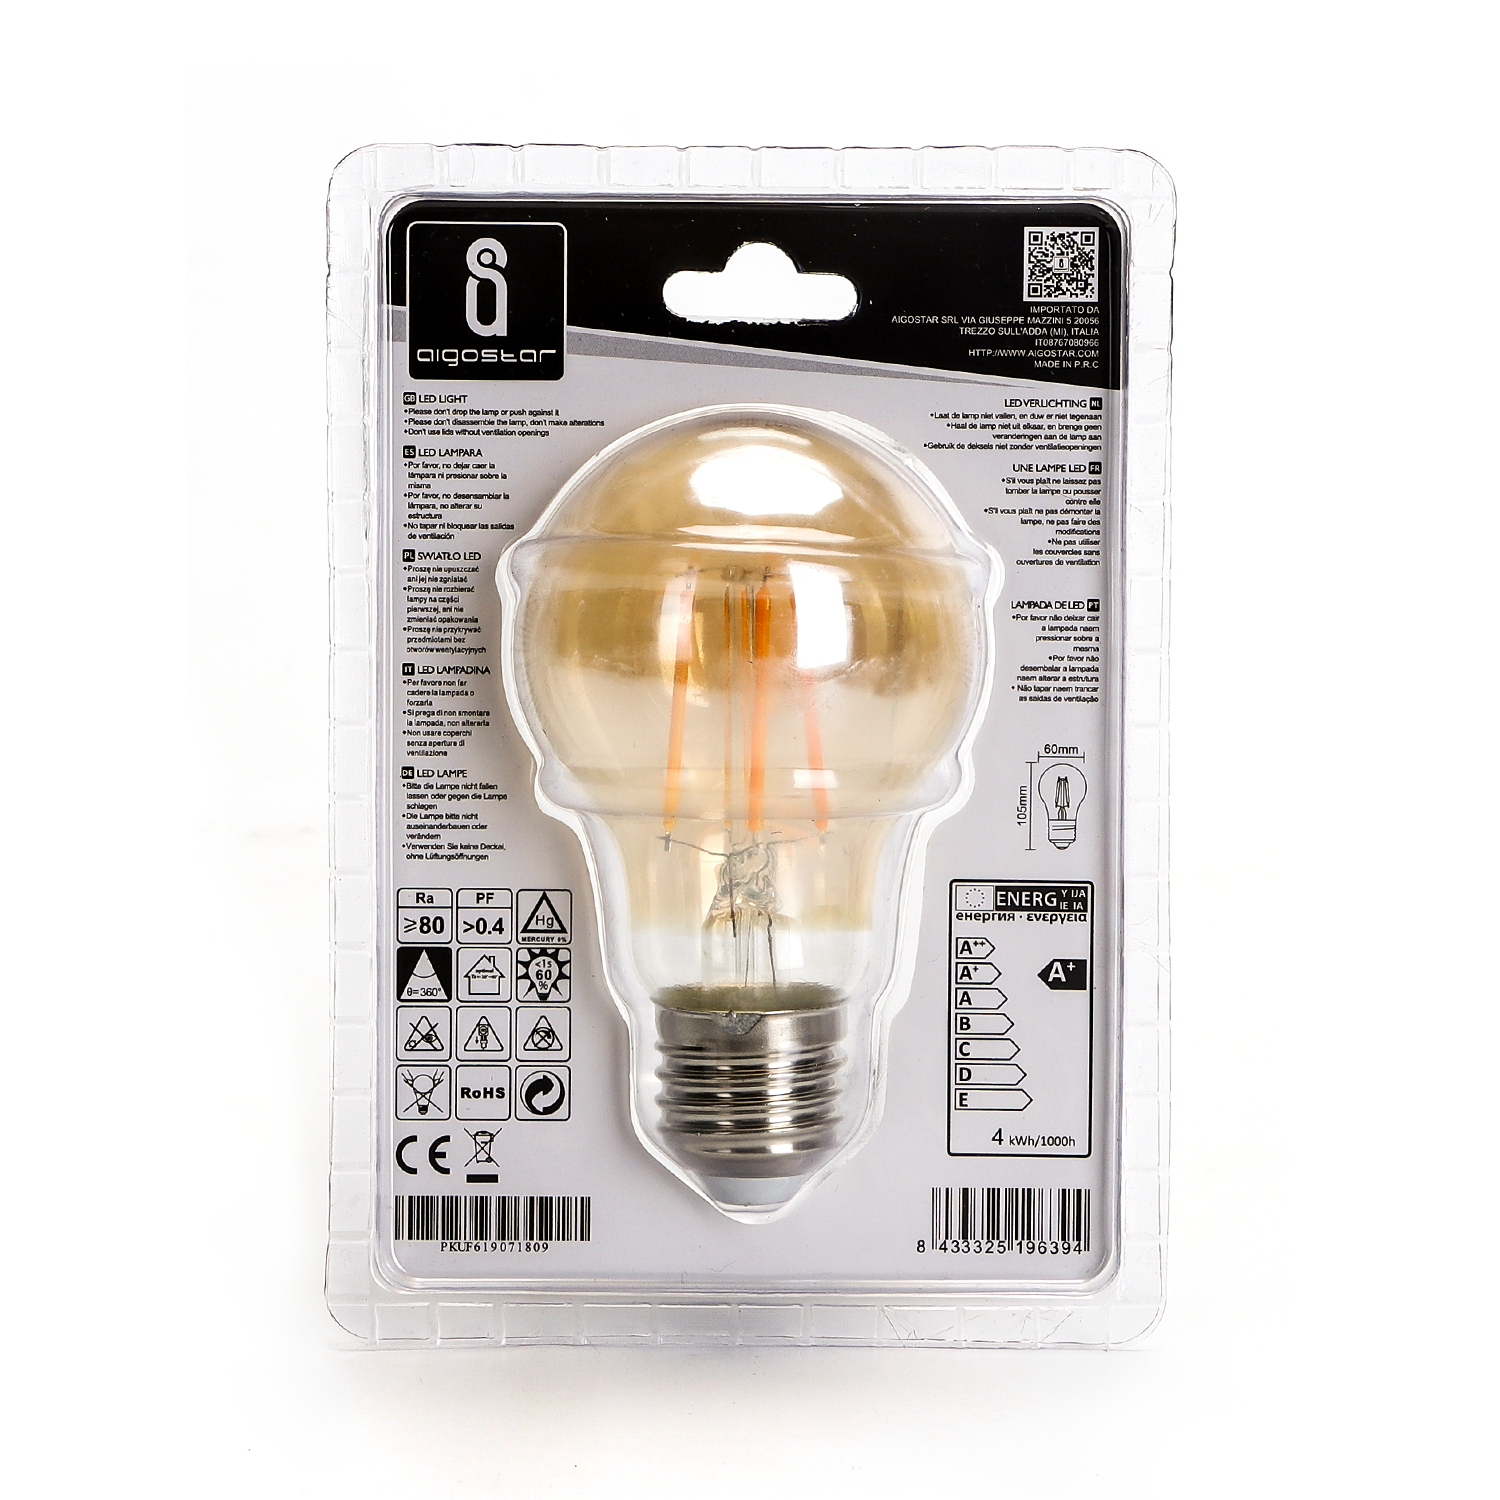 LED amber lamp filament 4 Watt grote fitting E27 2200K warm wit - achterkant verpakking